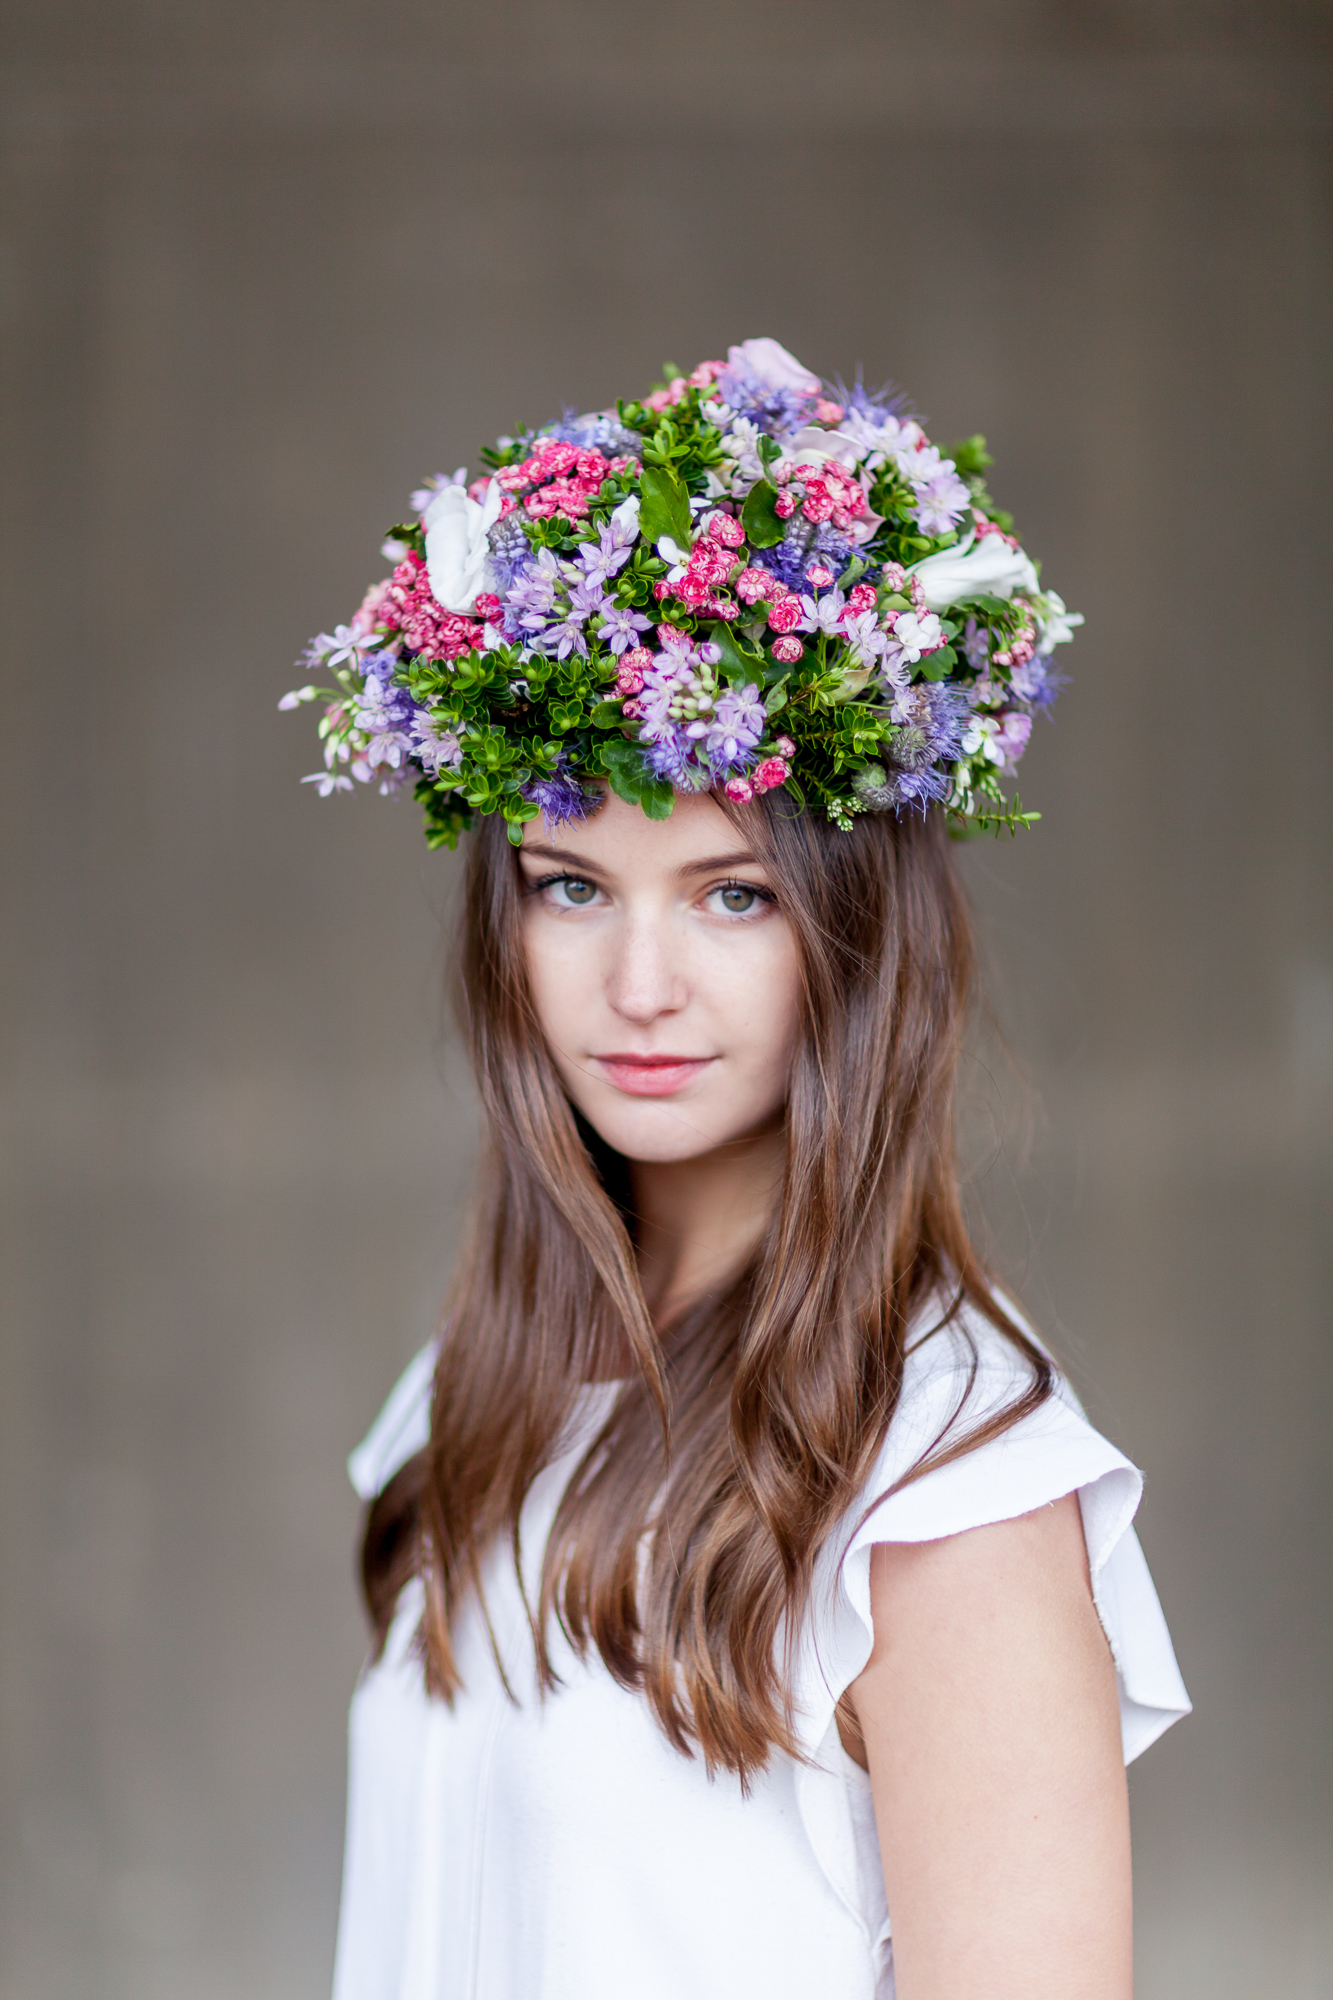 Day 2 of British Flowers Week 2016, featuring the cycle helmet made by Florence Kennedy of Petalon, presented to you by New Covent Garden Flower Market